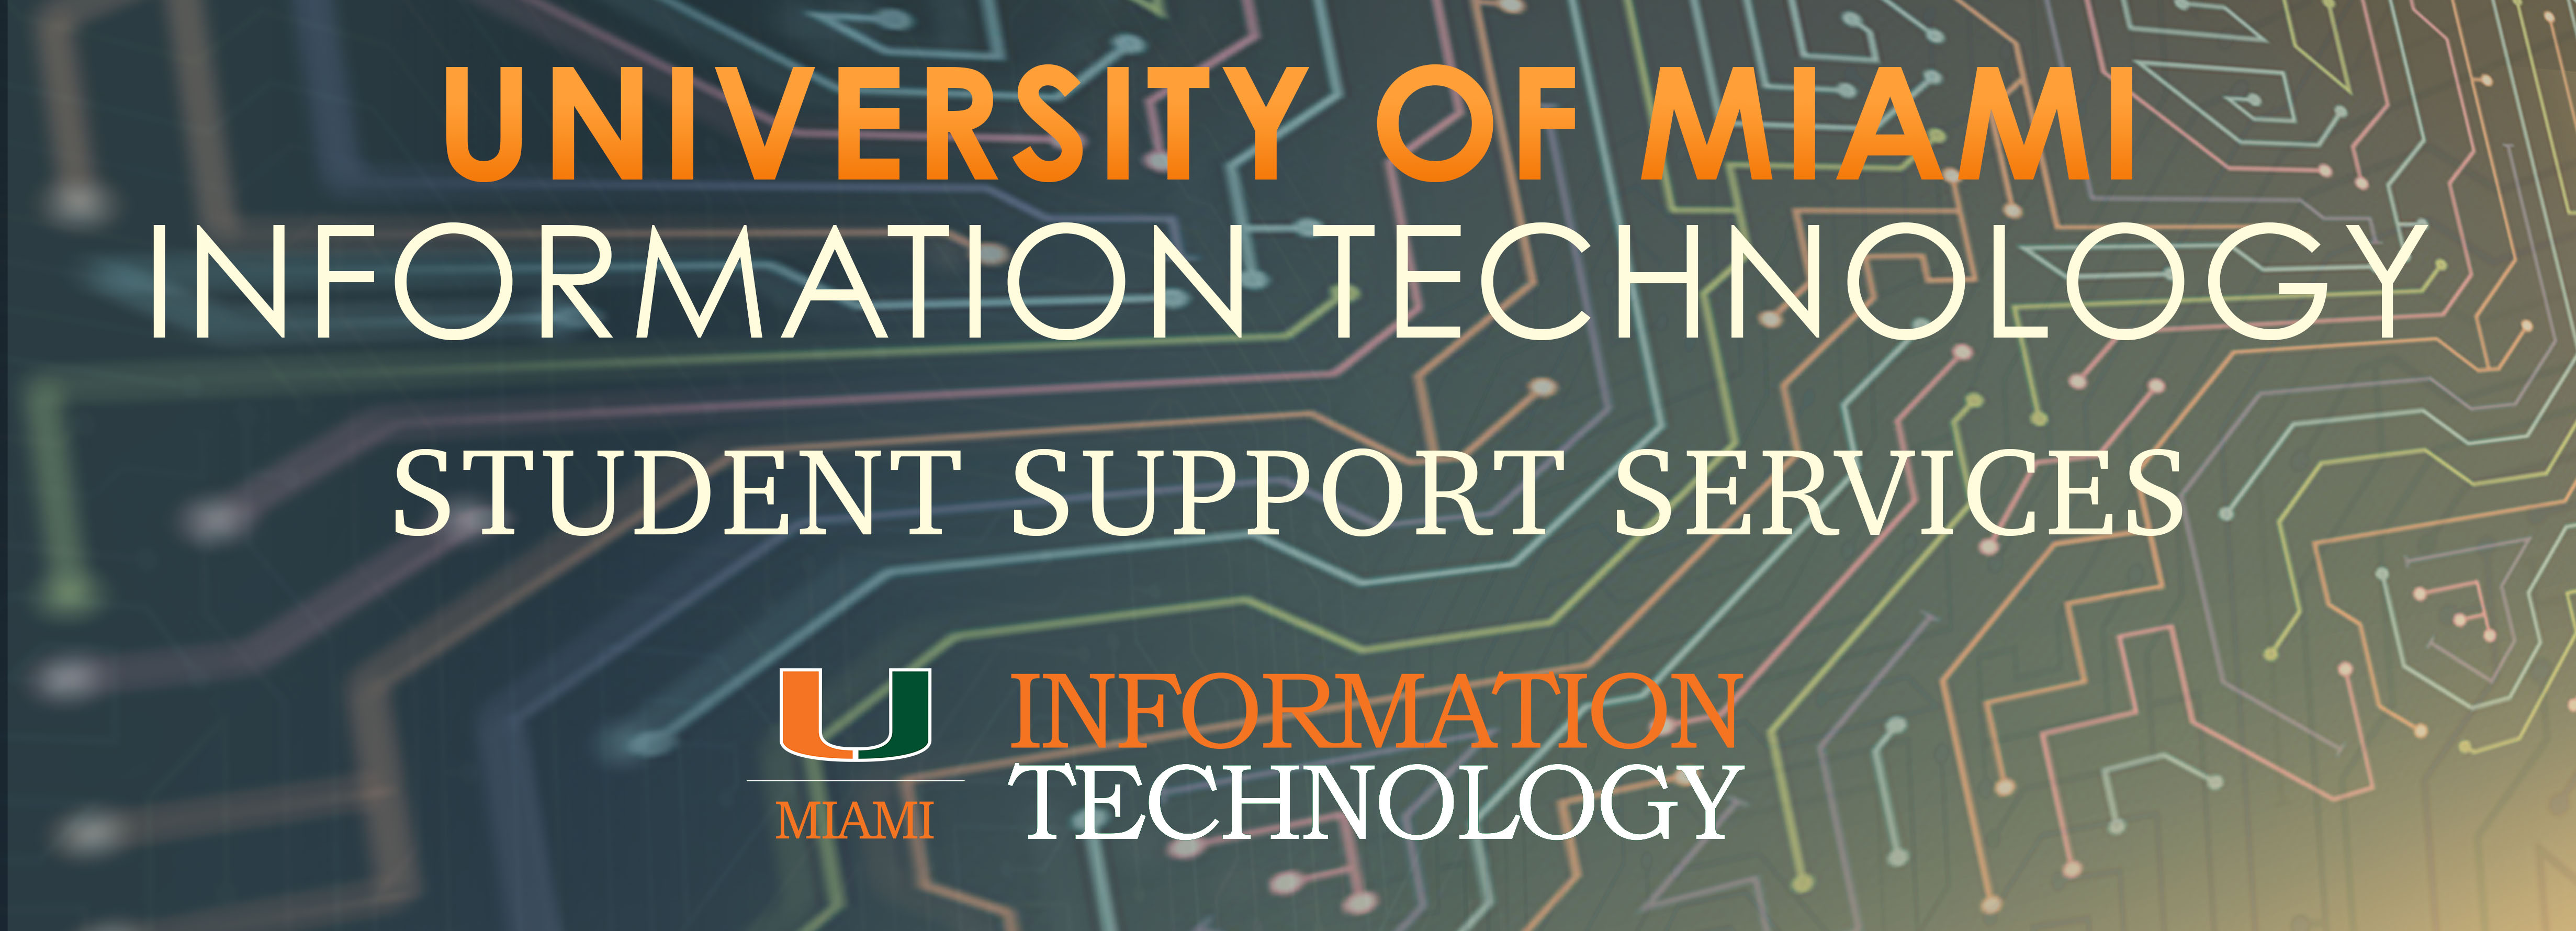 University Of Miami Information Technology Student Support Services